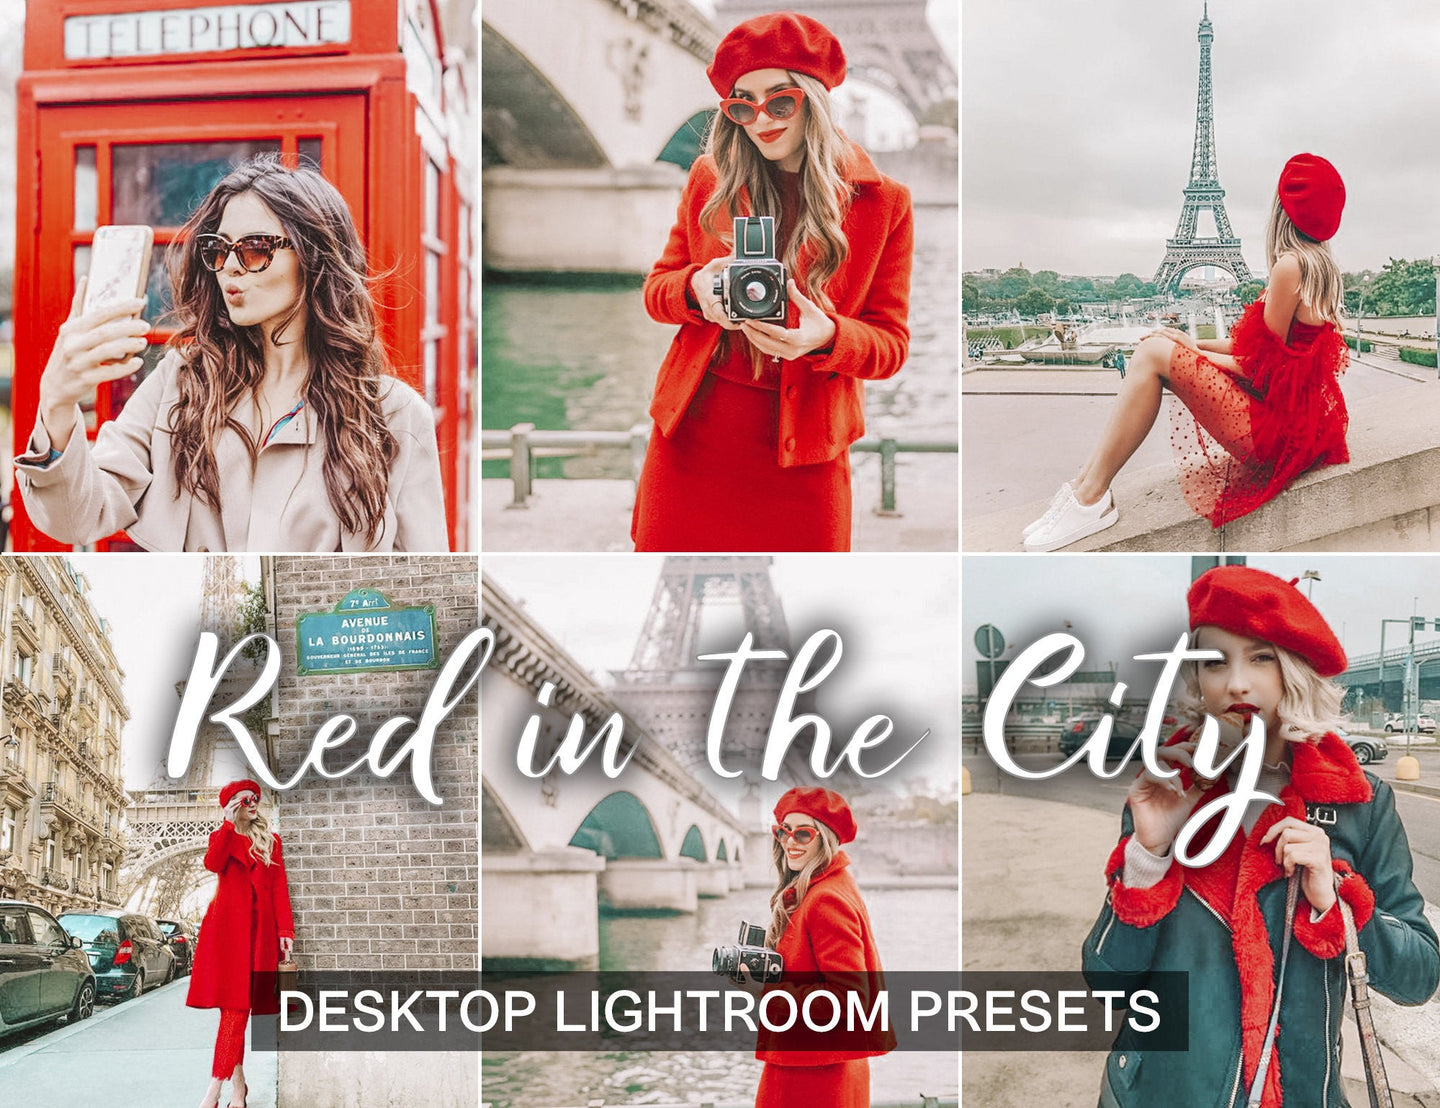 15 Presets Desktop Red in the City - KatManDooPRESETS